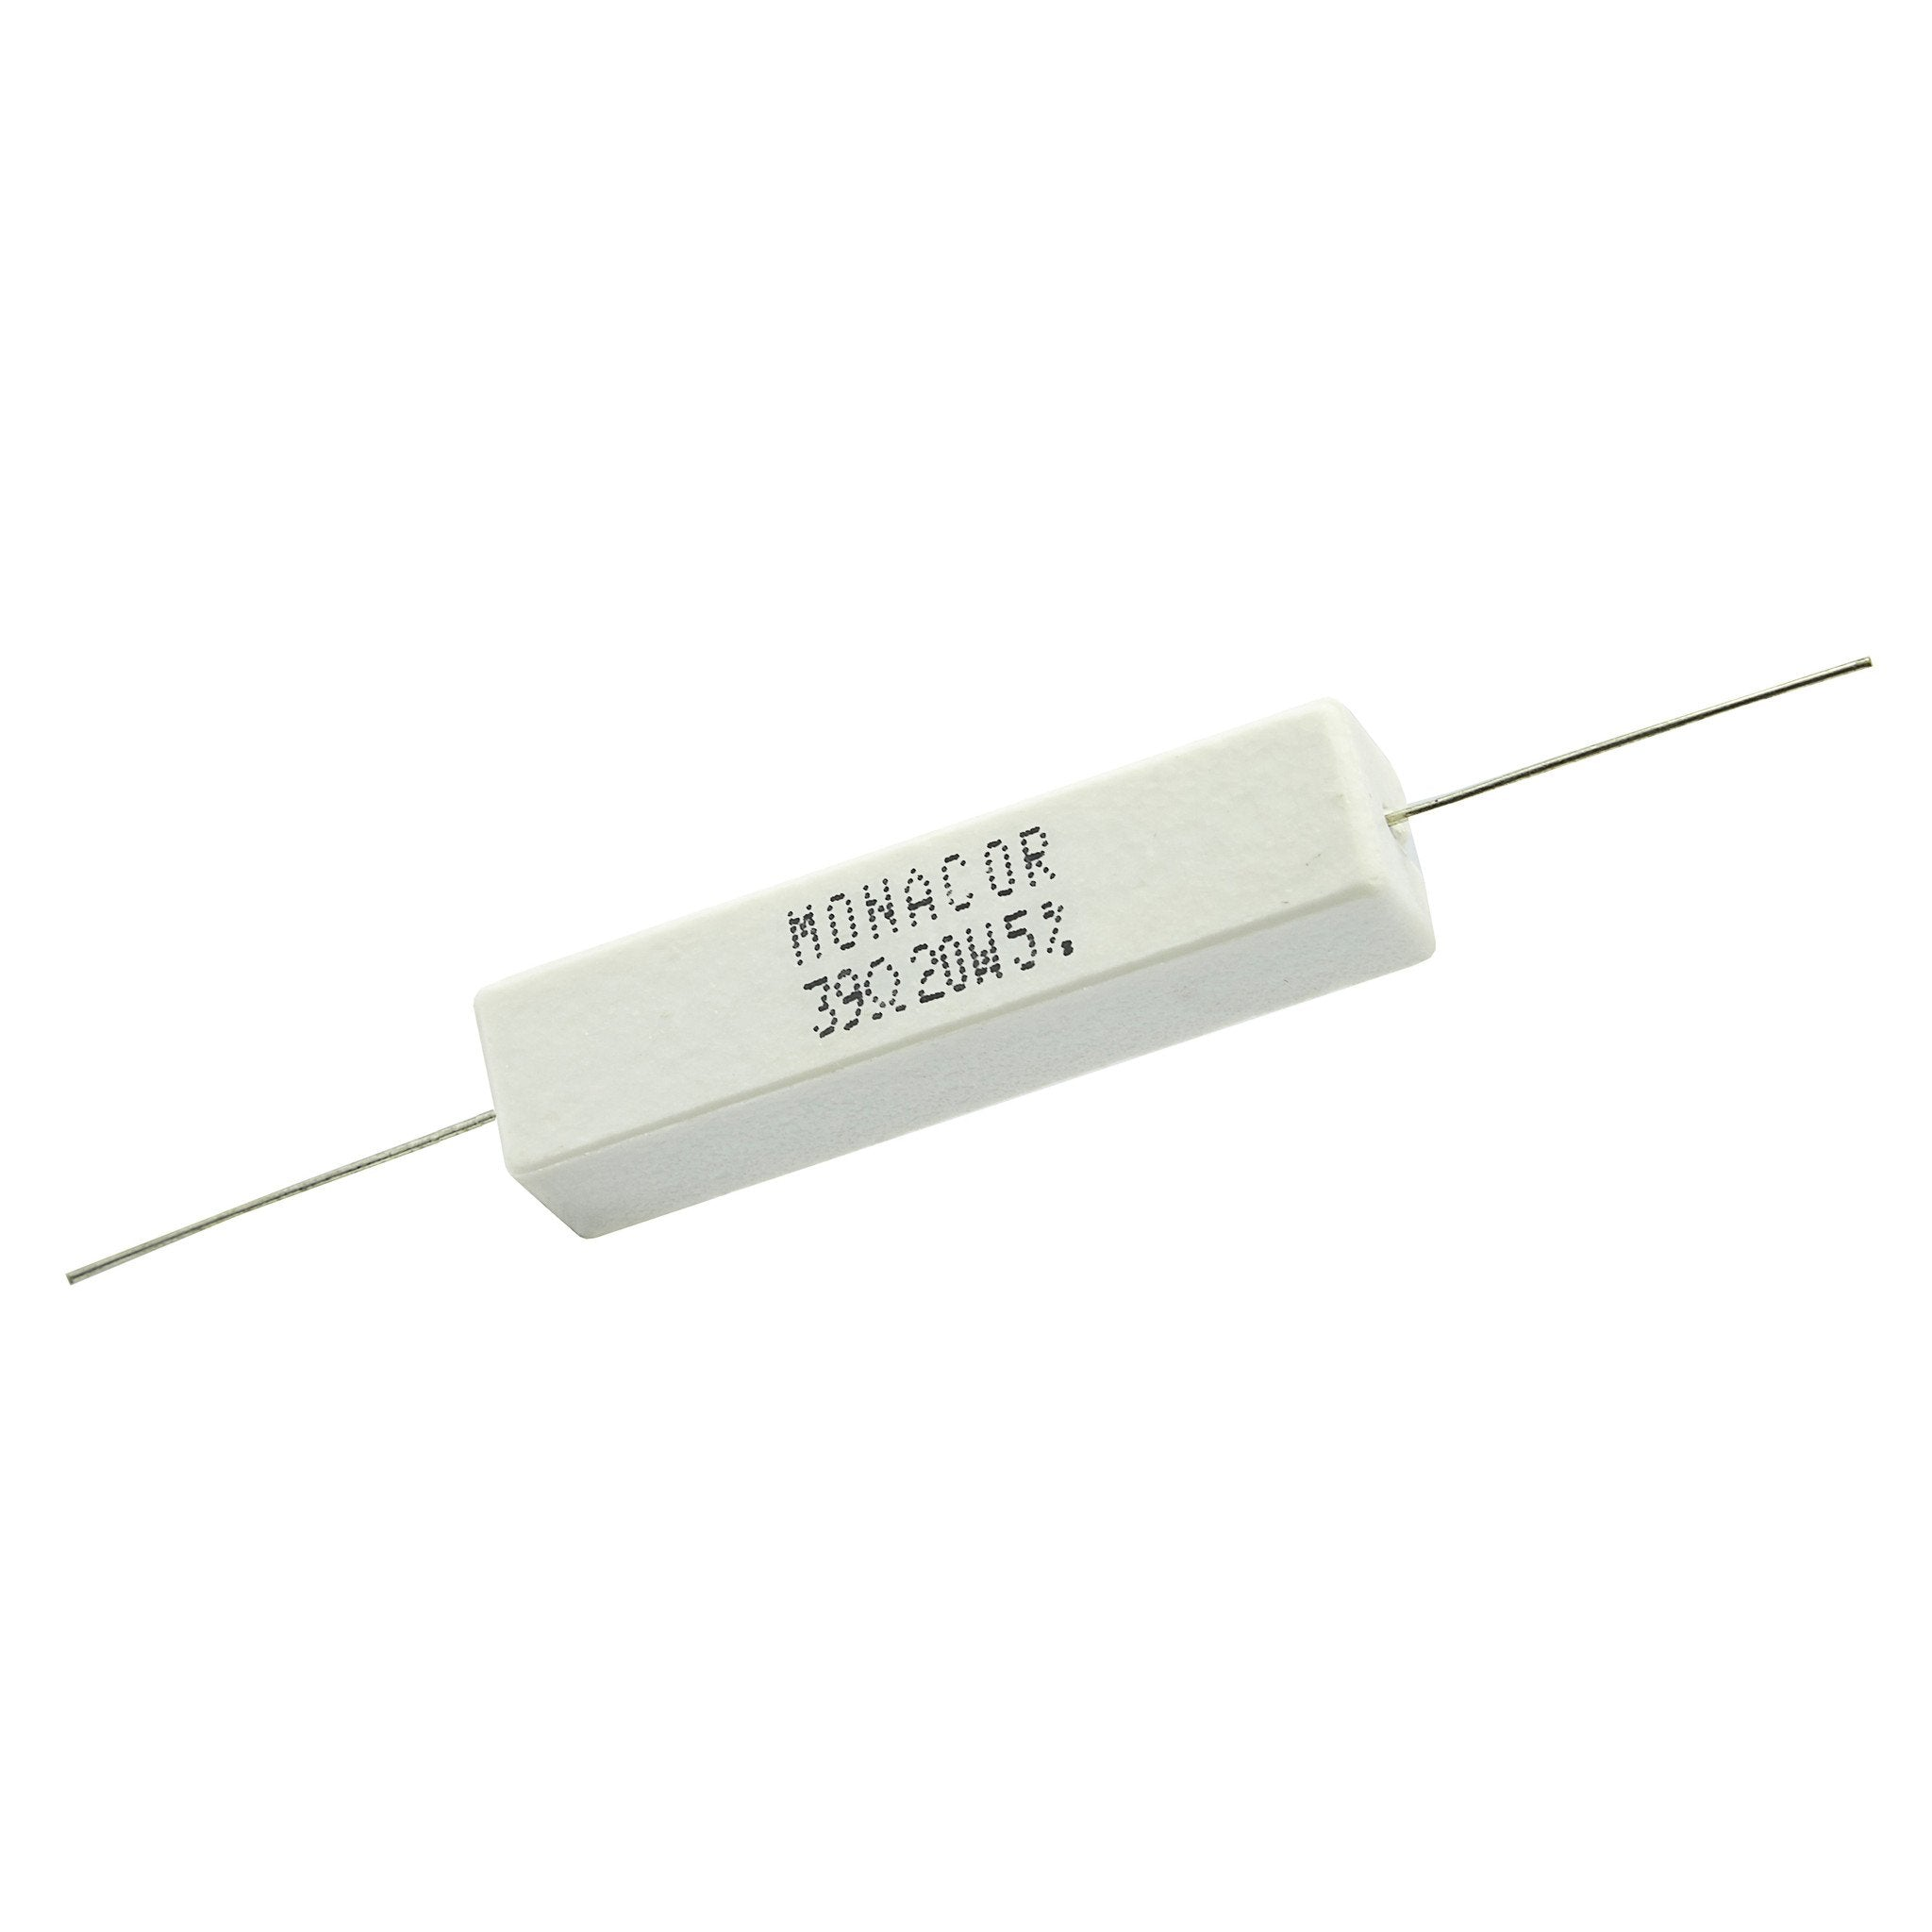 39 Ohm 20 Watt 5% Ceramic Wirewound Resistor - Willys-Hifi Ltd